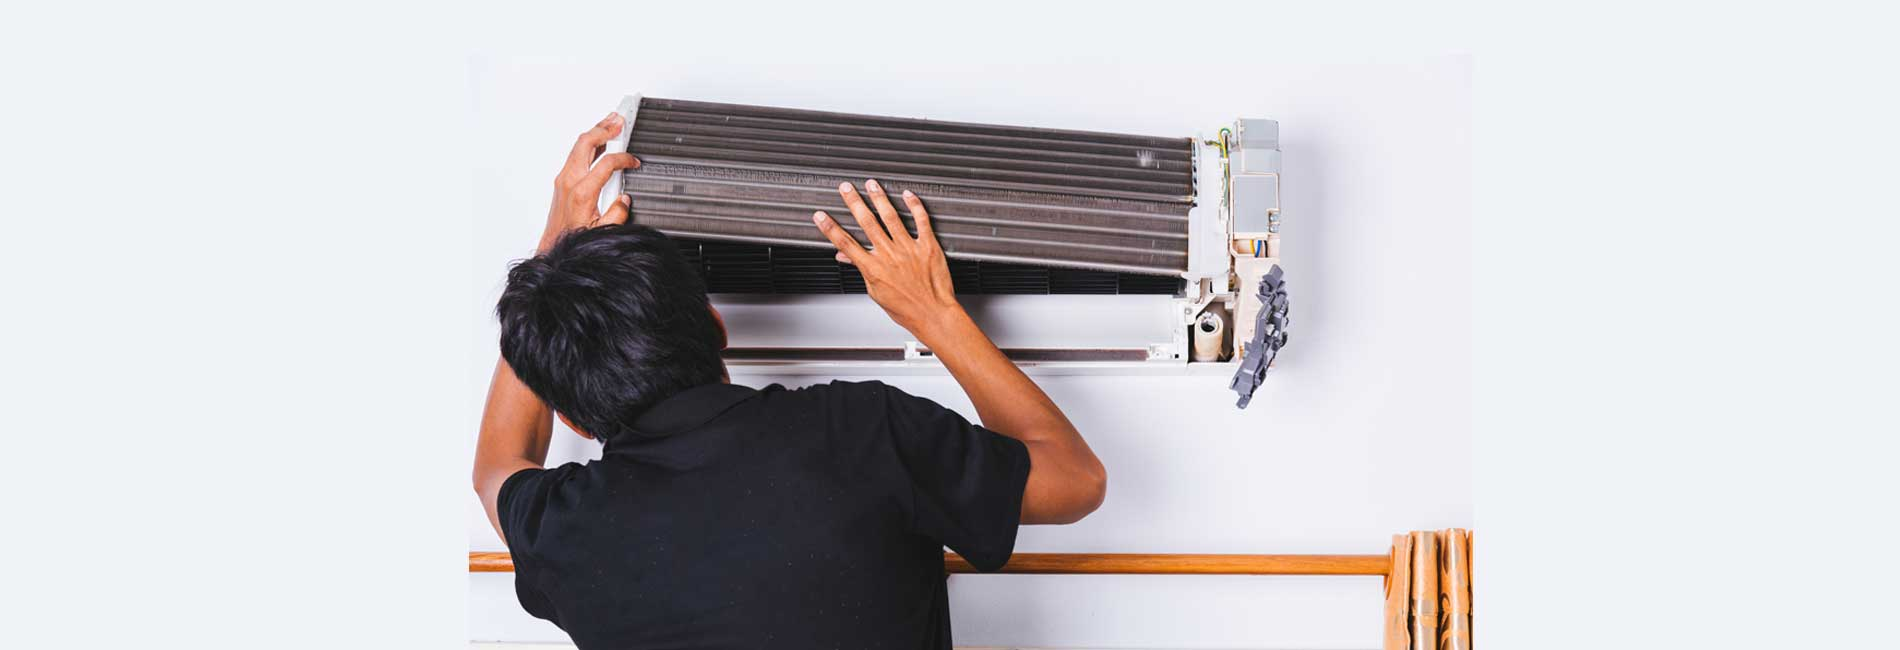 Panasonic AC General Service in Puthagaram